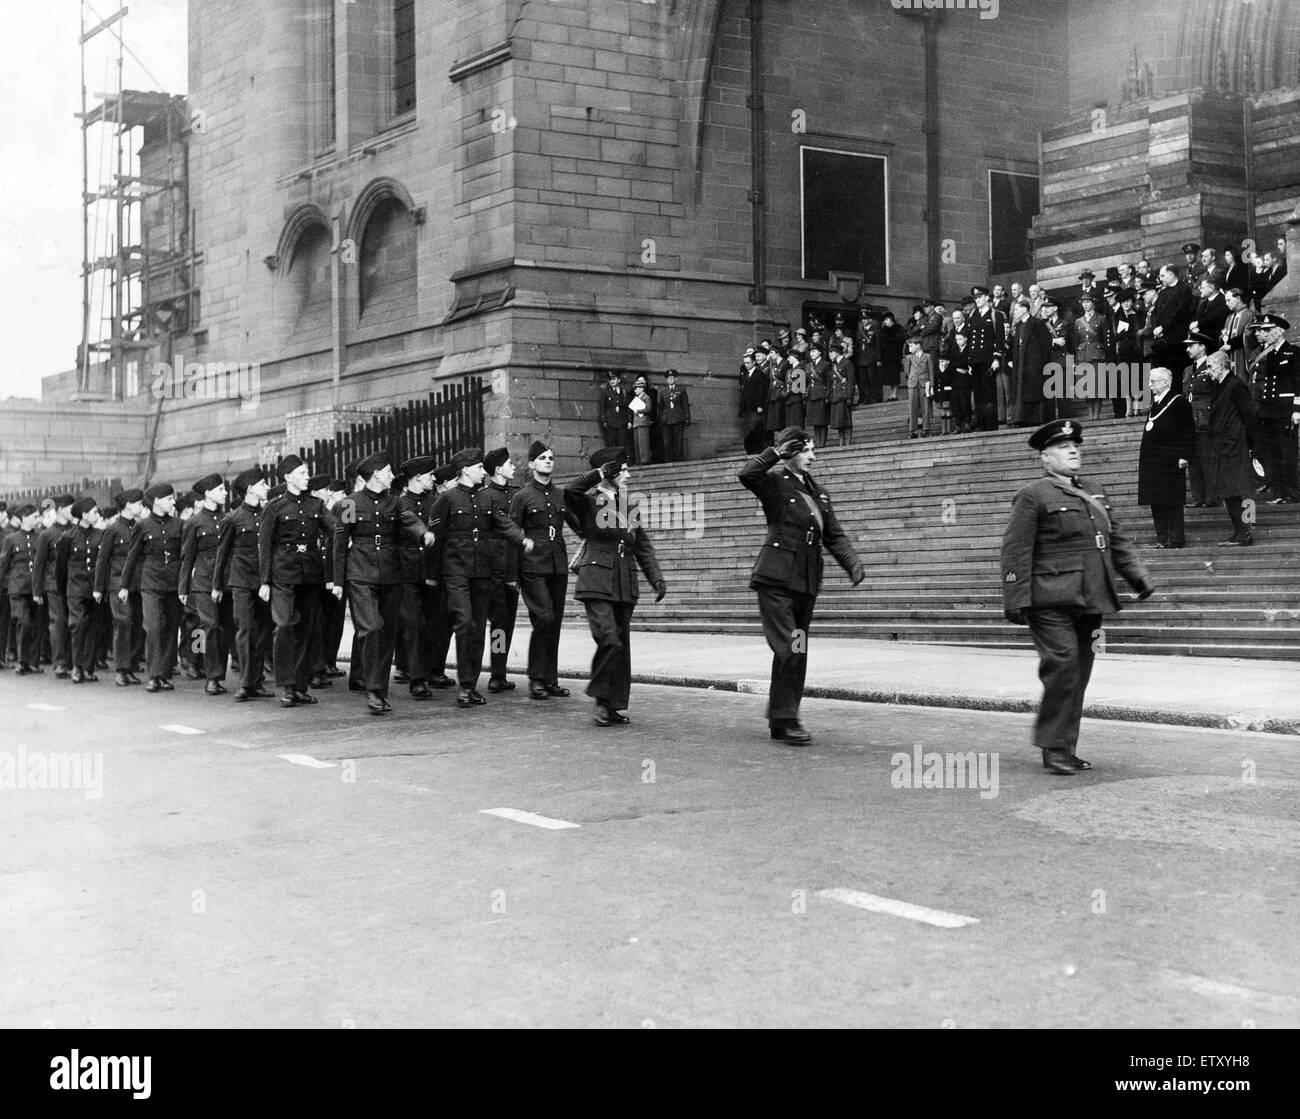 Members of the Air Training Corps on parade walking past the Anglican Cathedral in Liverpool. 22nd September 1941. - Stock Image